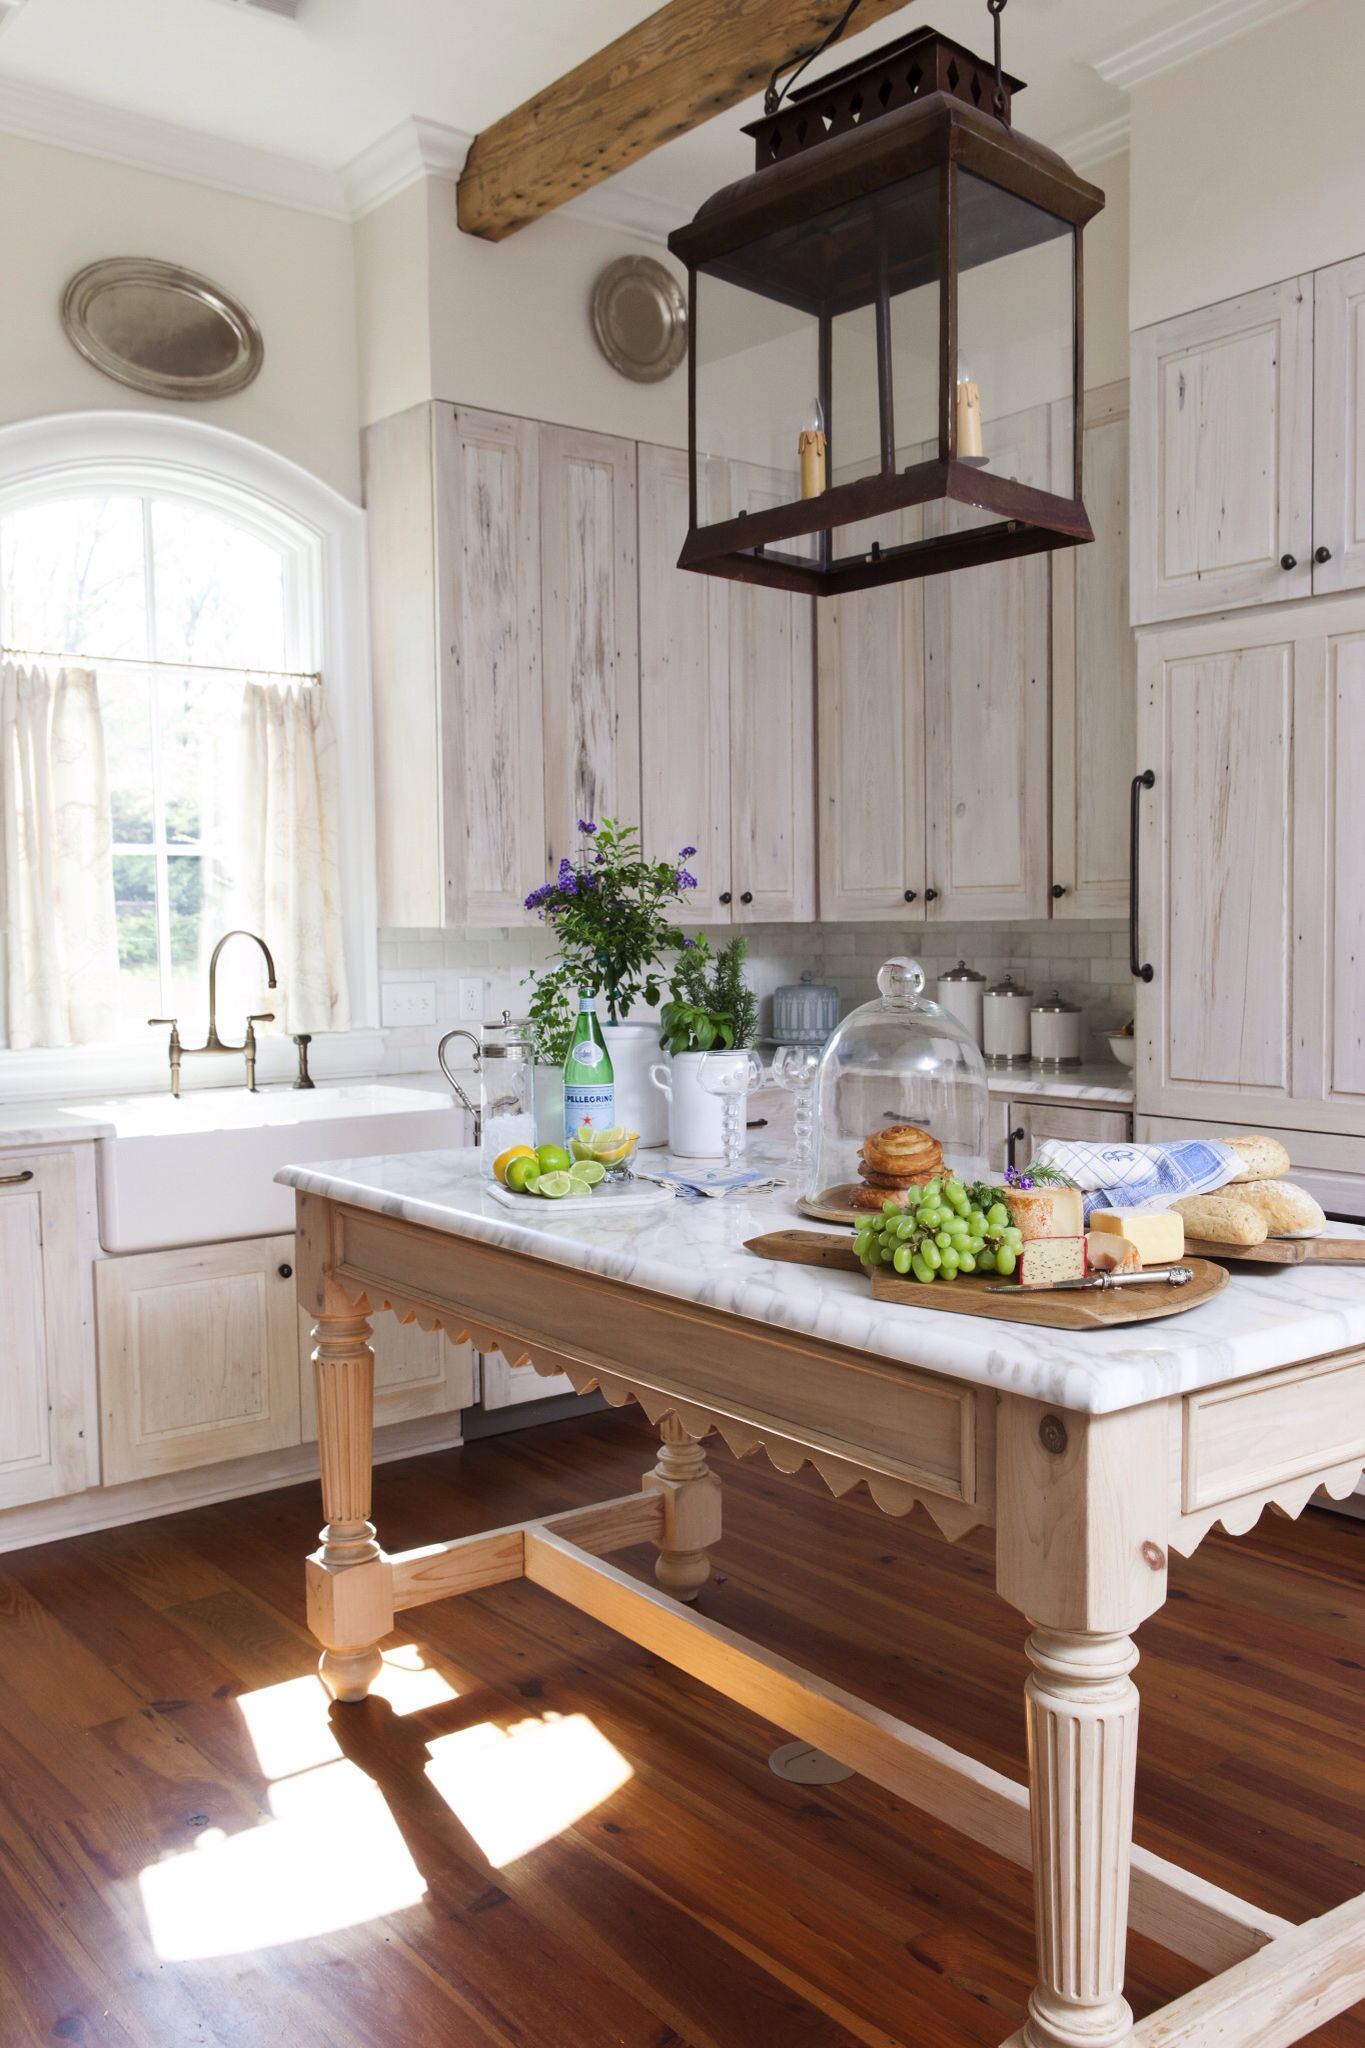 Annelle primos when i grow up pinterest kitchens wood